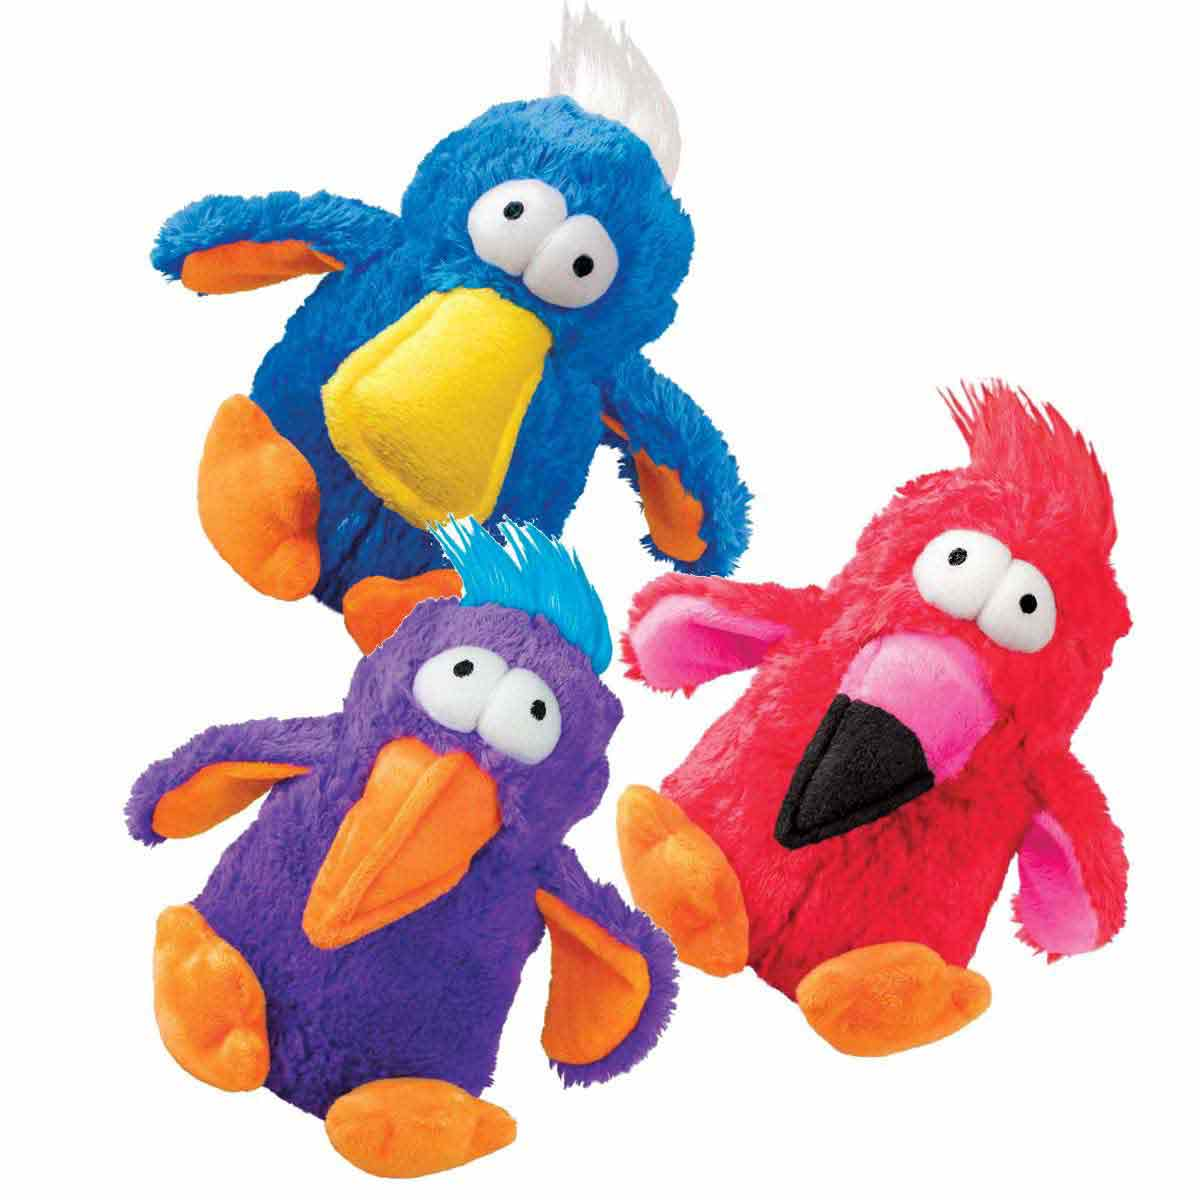 Medium Stuffed KONG Dodo Bird Dog Toy - Assorted Colors